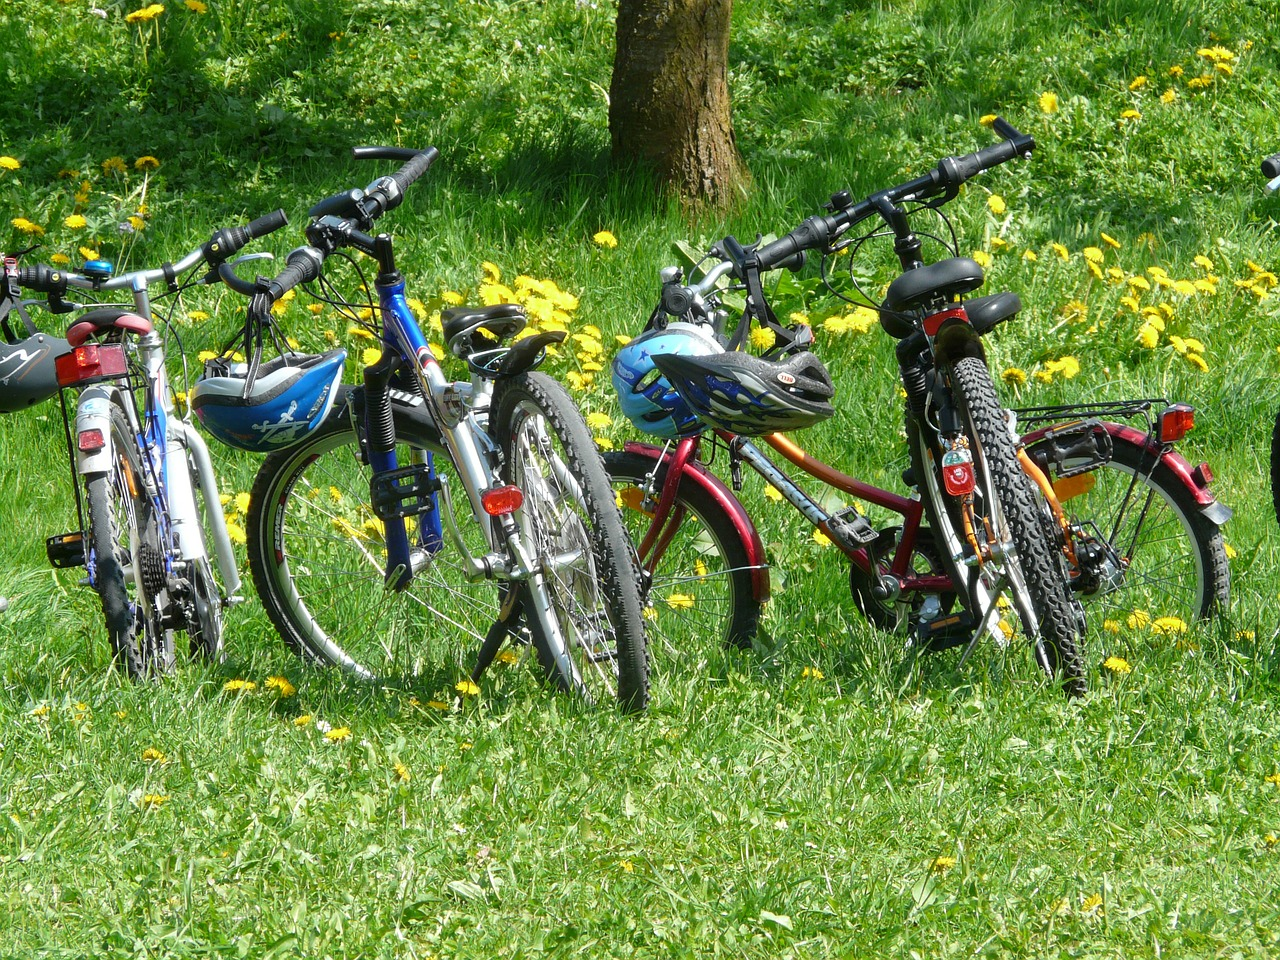 bicycles bike family outing free photo